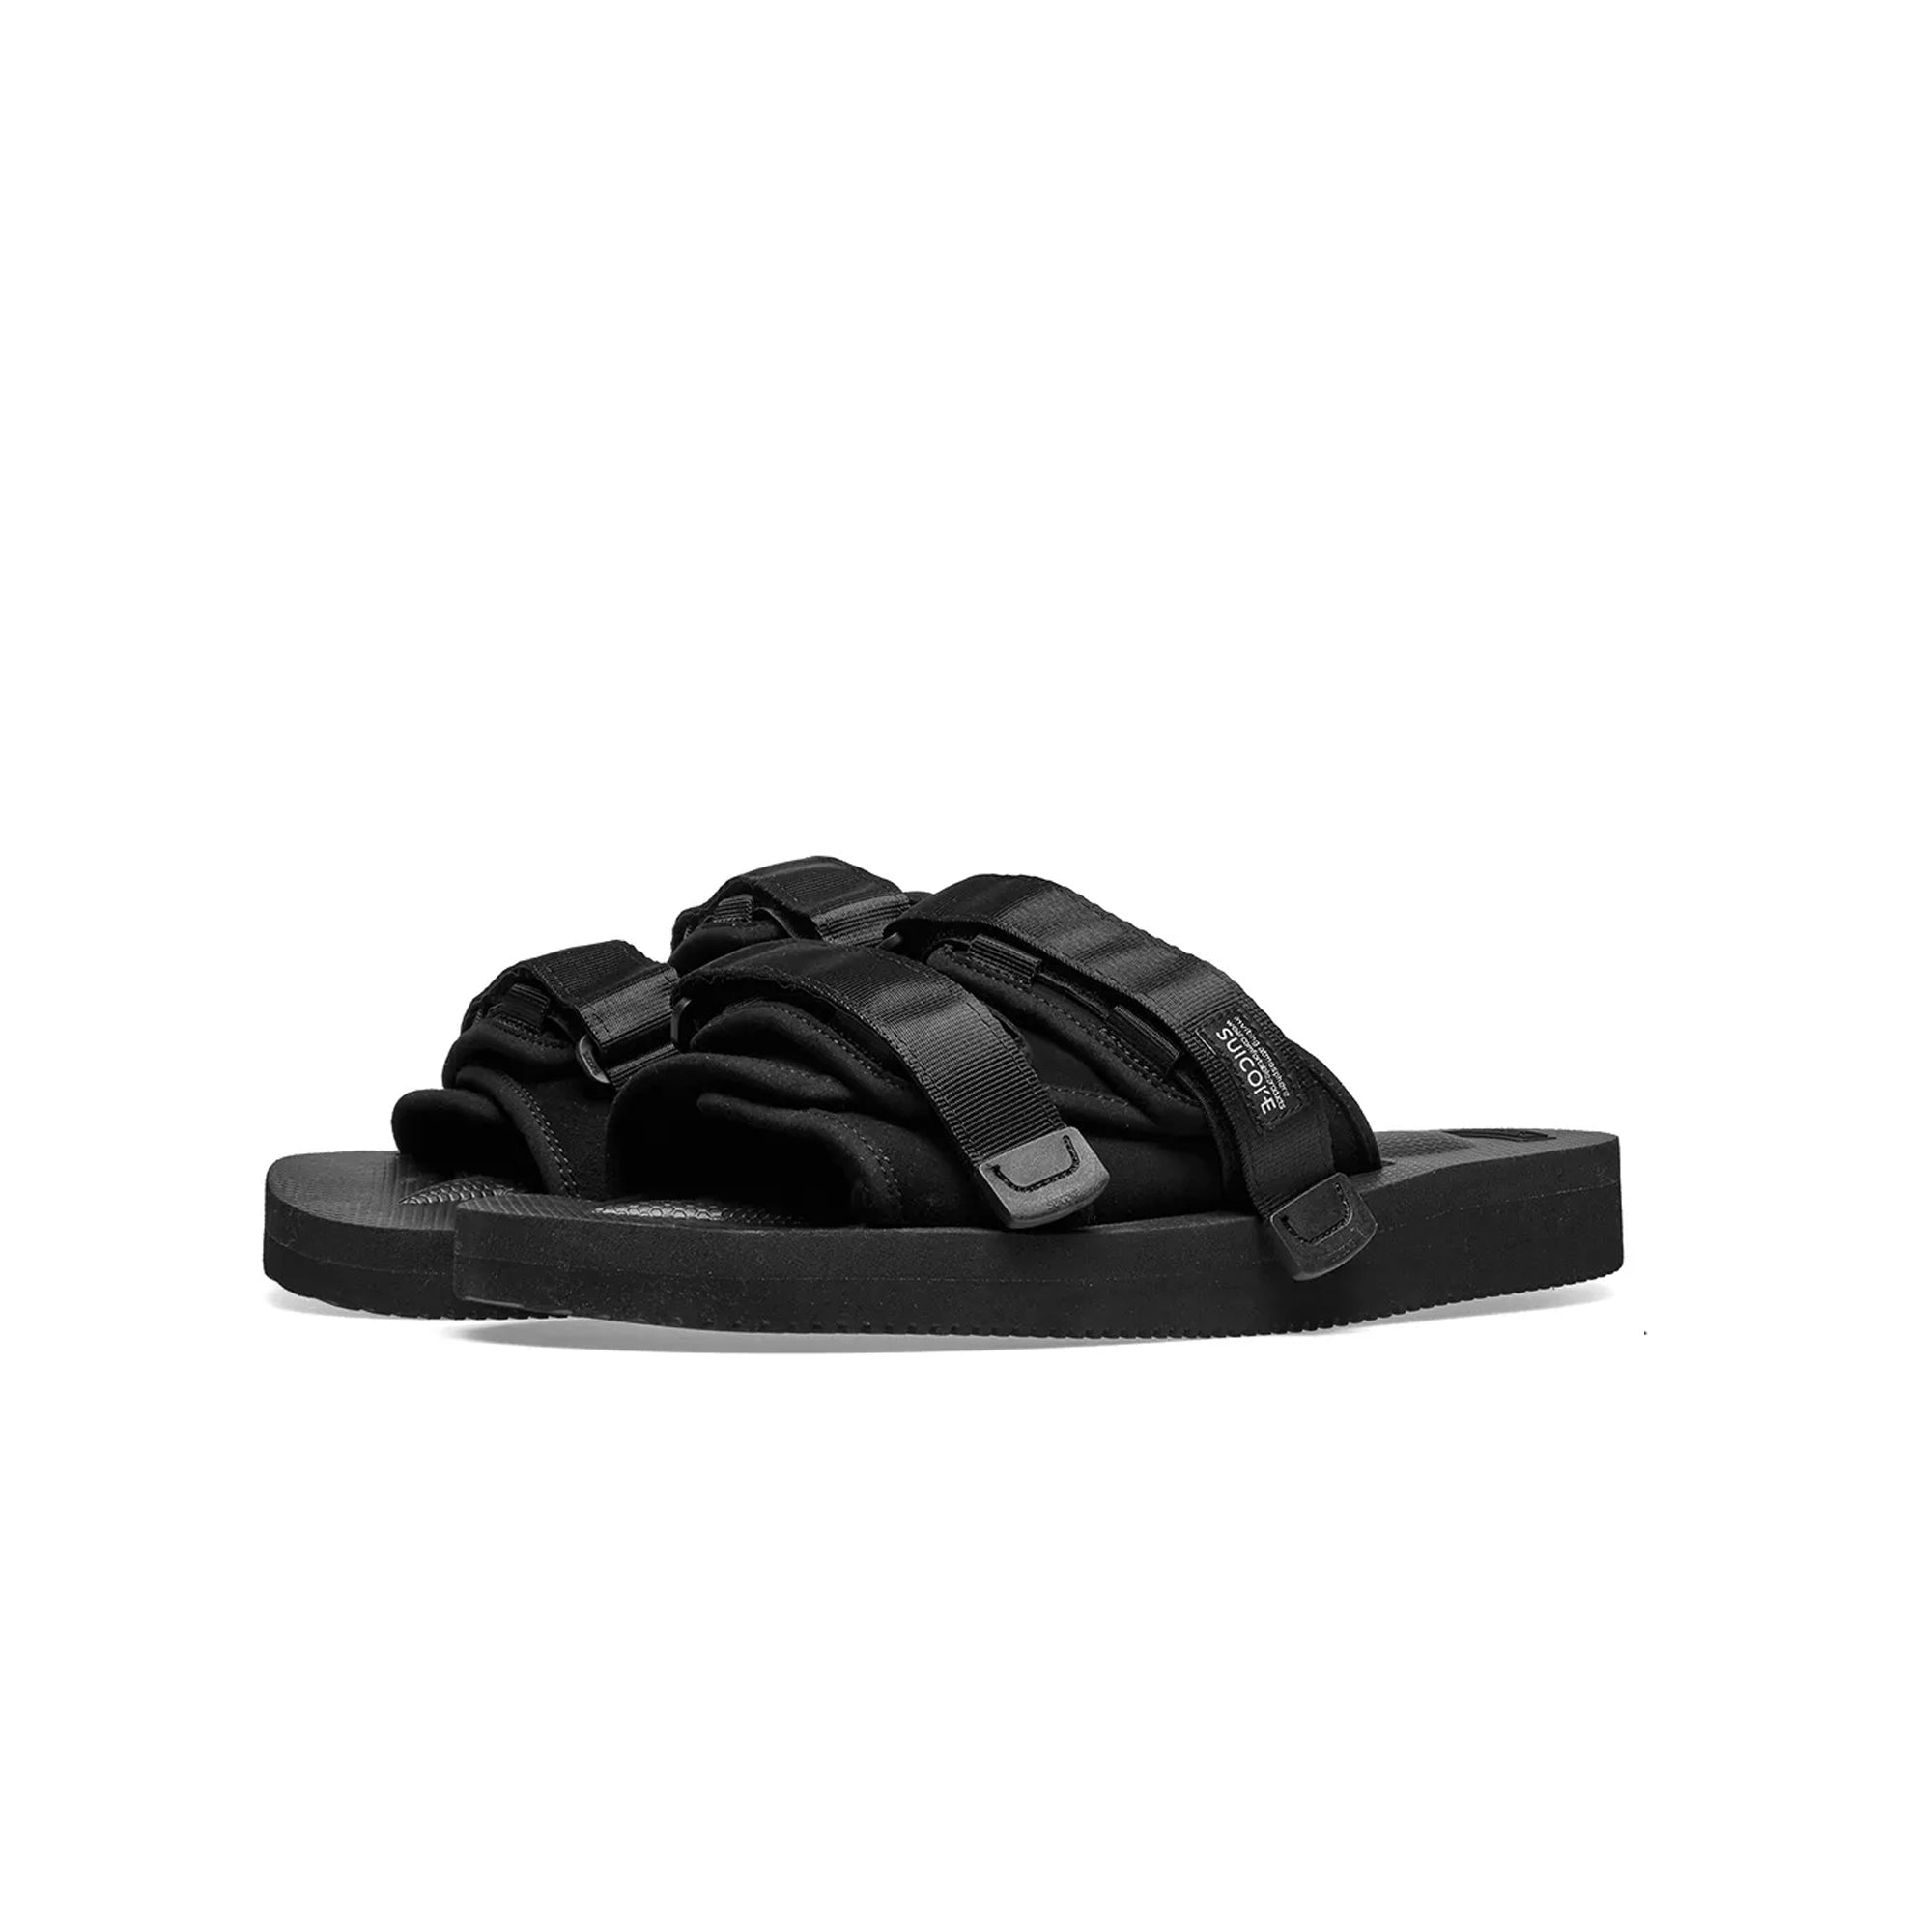 0a1d9918d245 Suicoke Men s MOTO-VS Sandals  OG-056VS